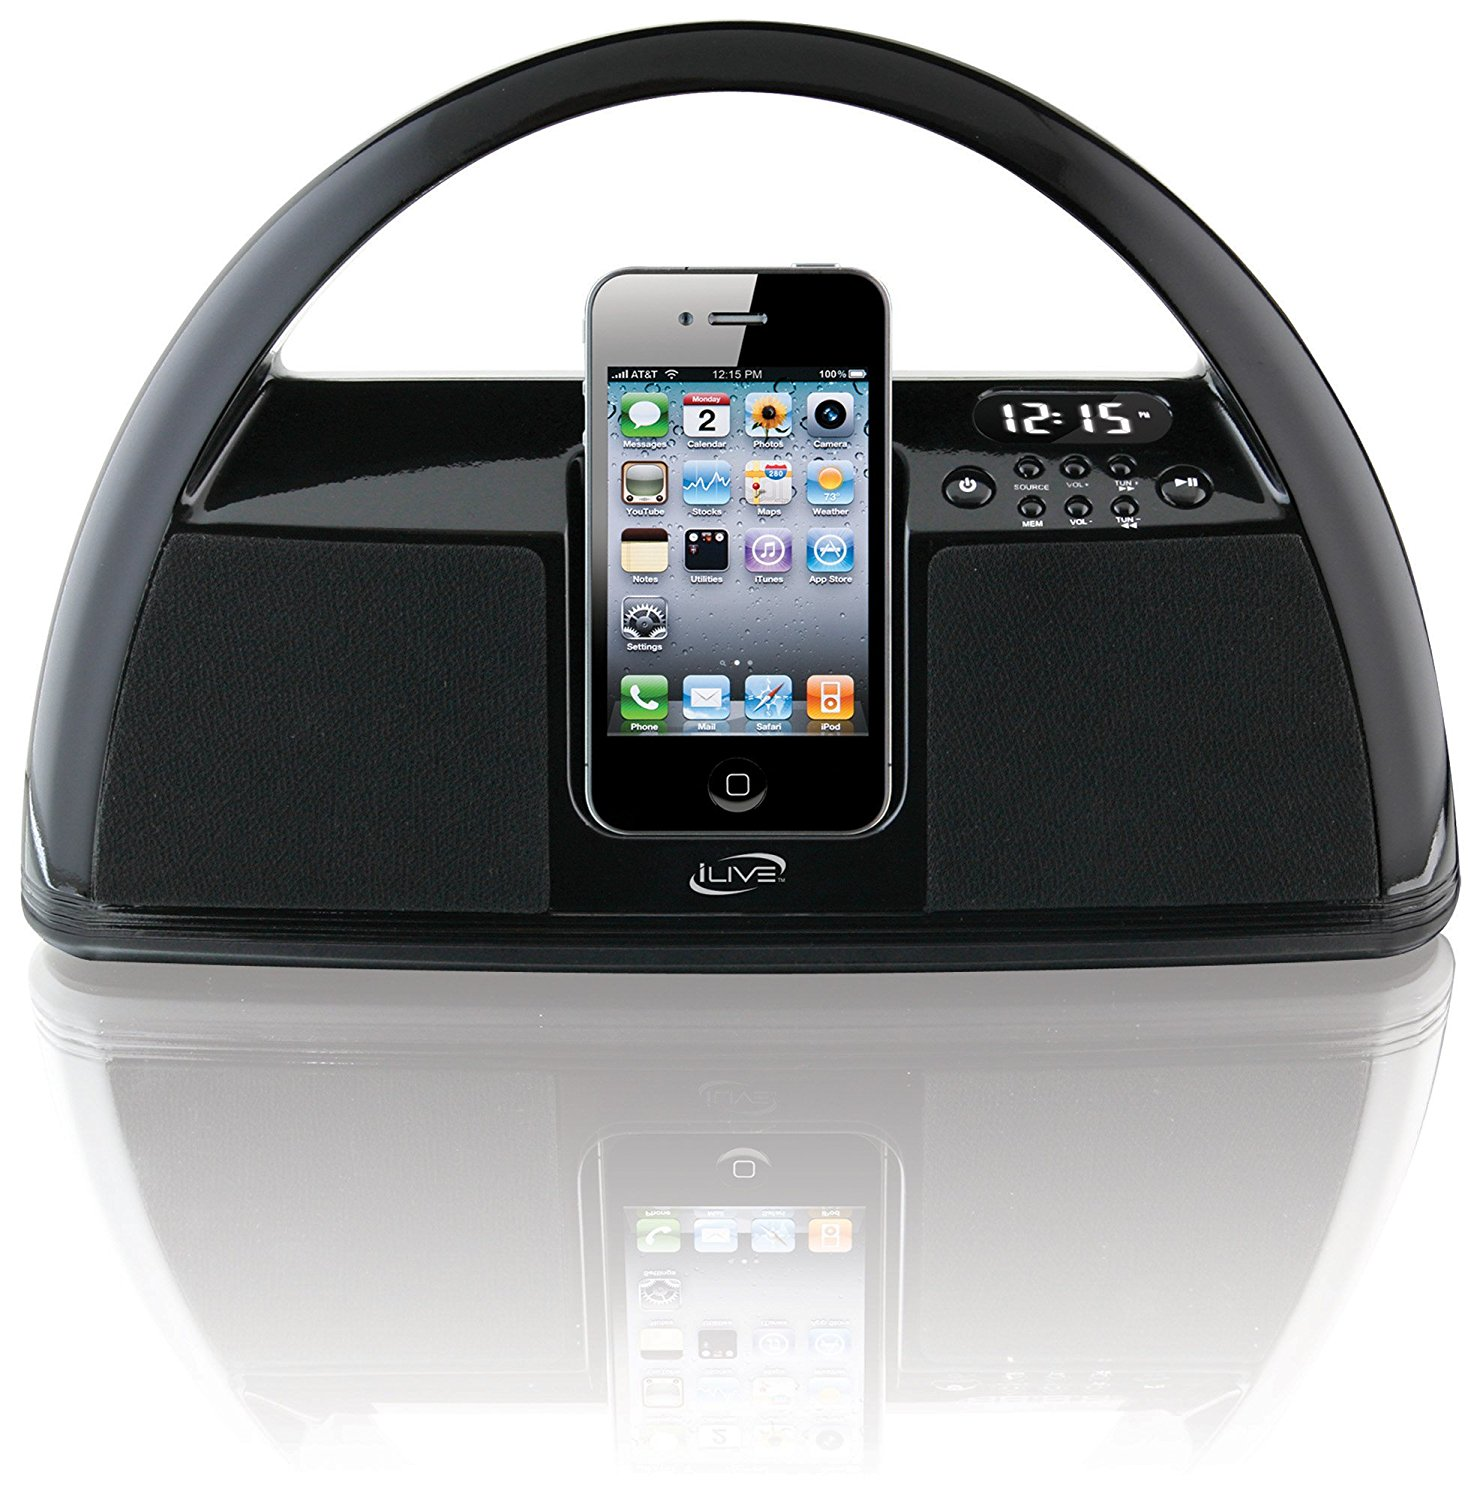 iLive iBP181B Portable Boombox PLL/FM Radio with Dock for iPhone/iPod